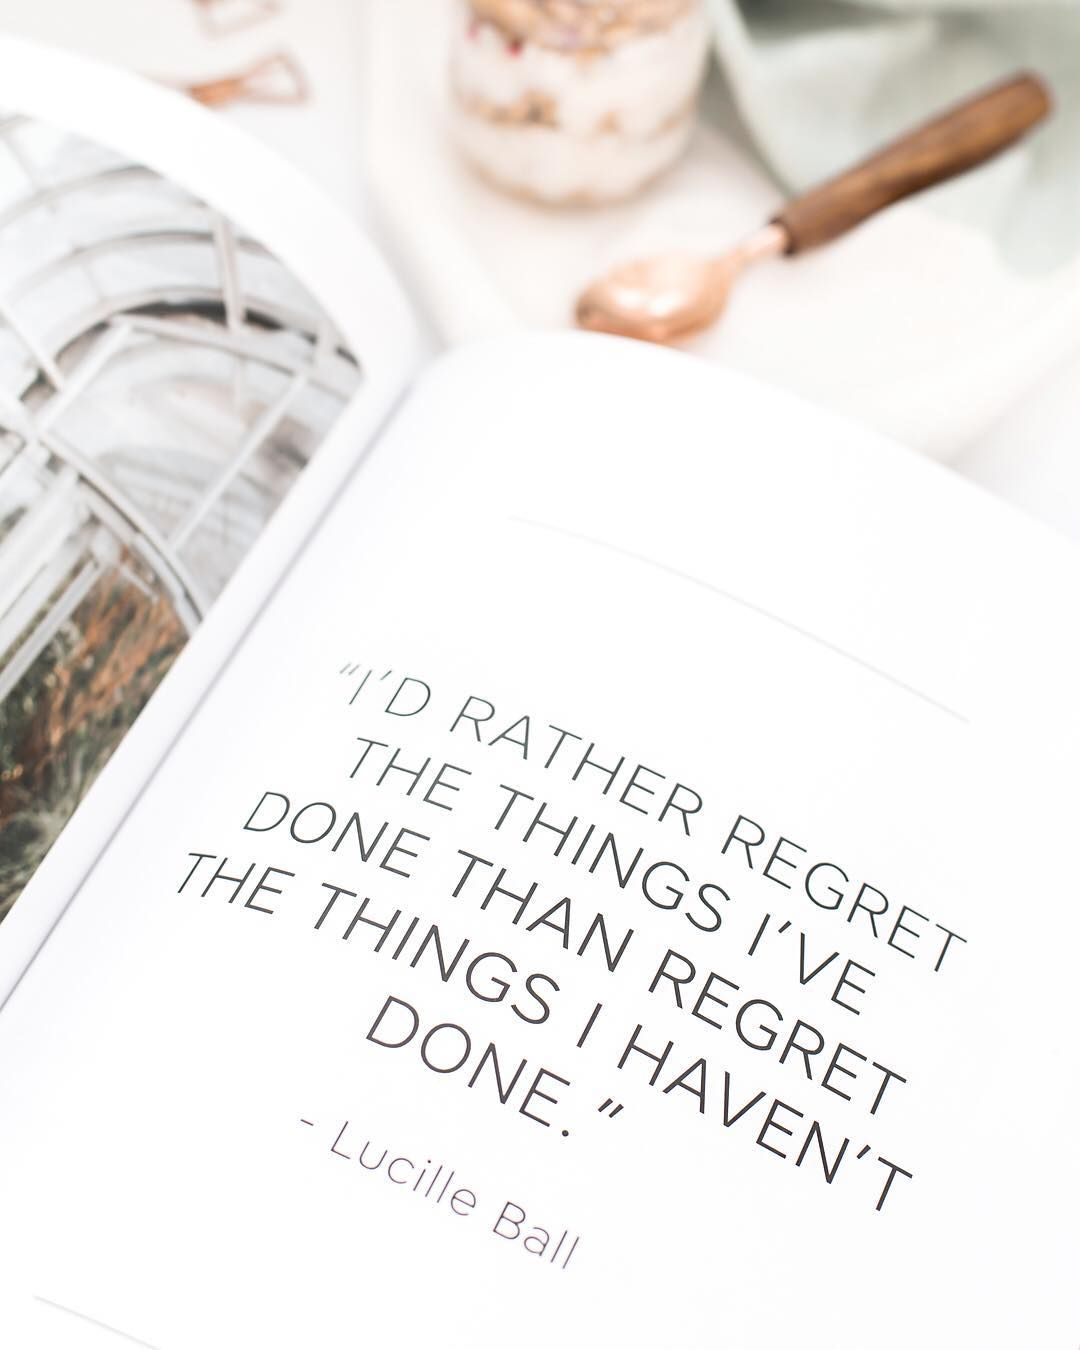 """""""I'd rather regret the things i've done than regret the things I haven't done."""" -Lucille Ball _ Keep working towards your goals. Your biggest obstacle is often times yourself. Don't let it be. #hcstyledstock #findyourscript #noregrets"""